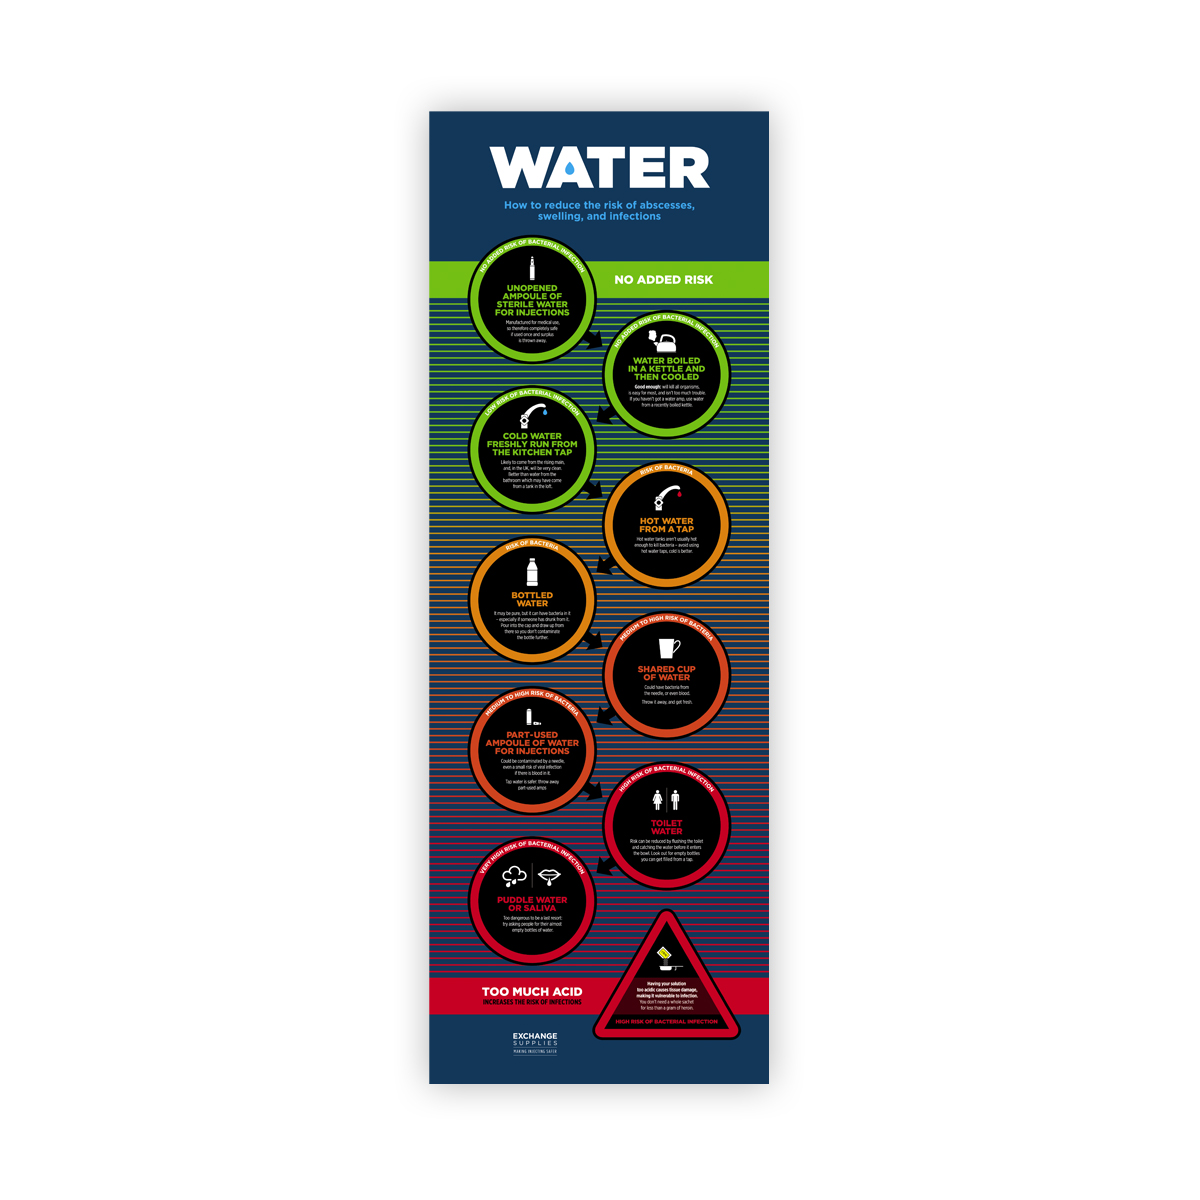 Water Poster (New Edition)